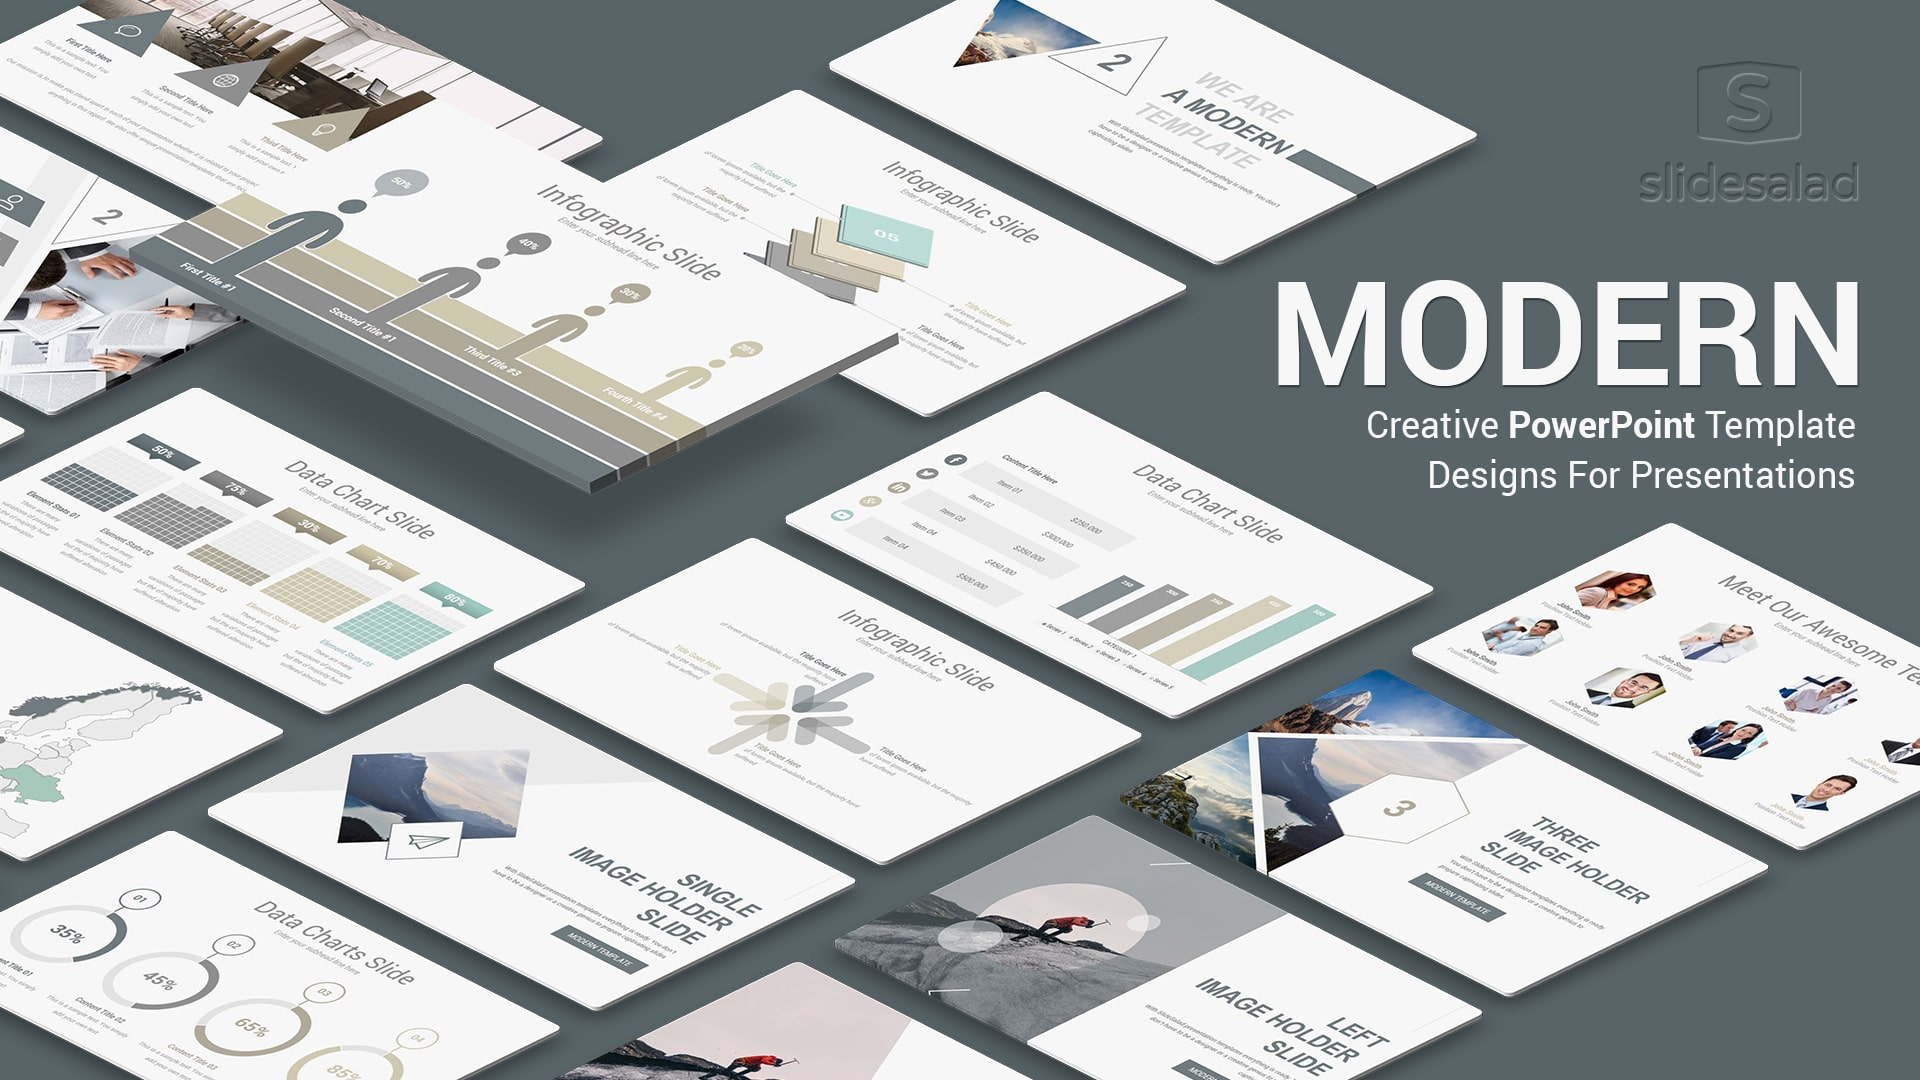 Modern PowerPoint Template for Presentation